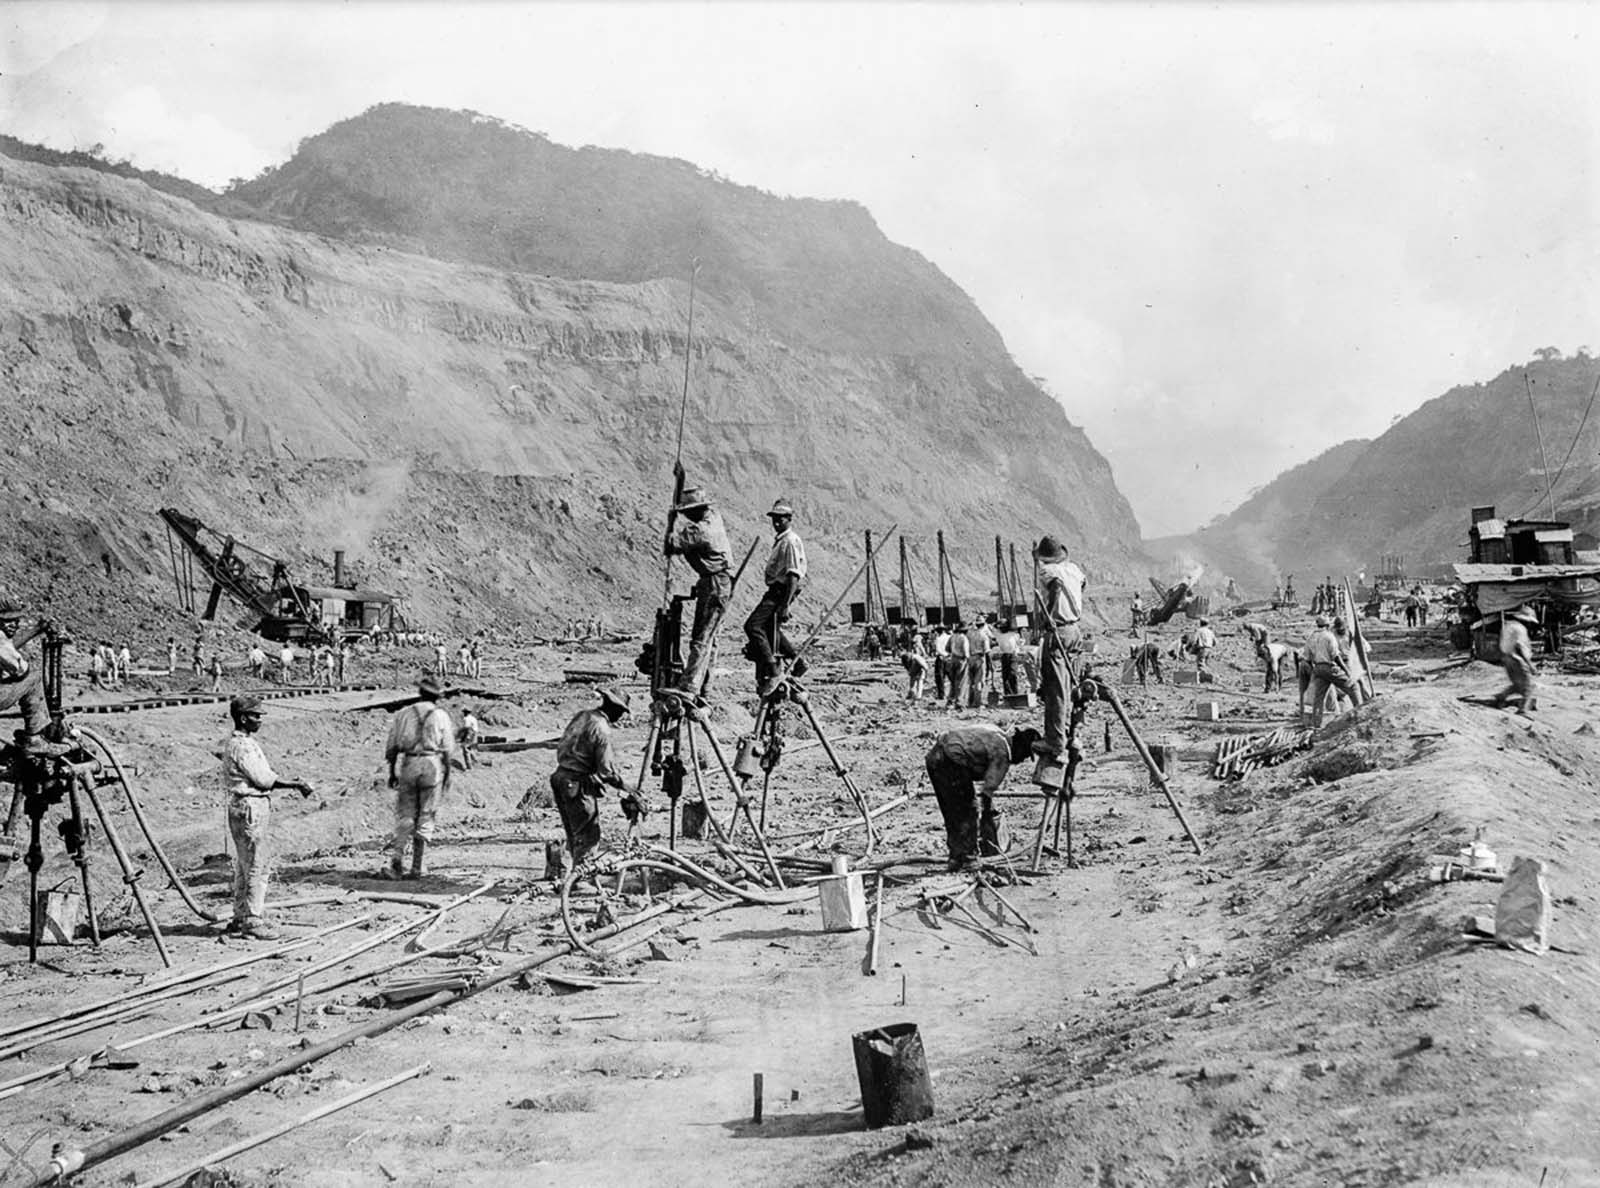 One of the greatest barriers to a canal was the continental divide, which originally rose to 110 metres (360.9 ft) above sea level at its highest point. The effort to cut through this barrier of rock was one of the greatest challenges faced by the project.